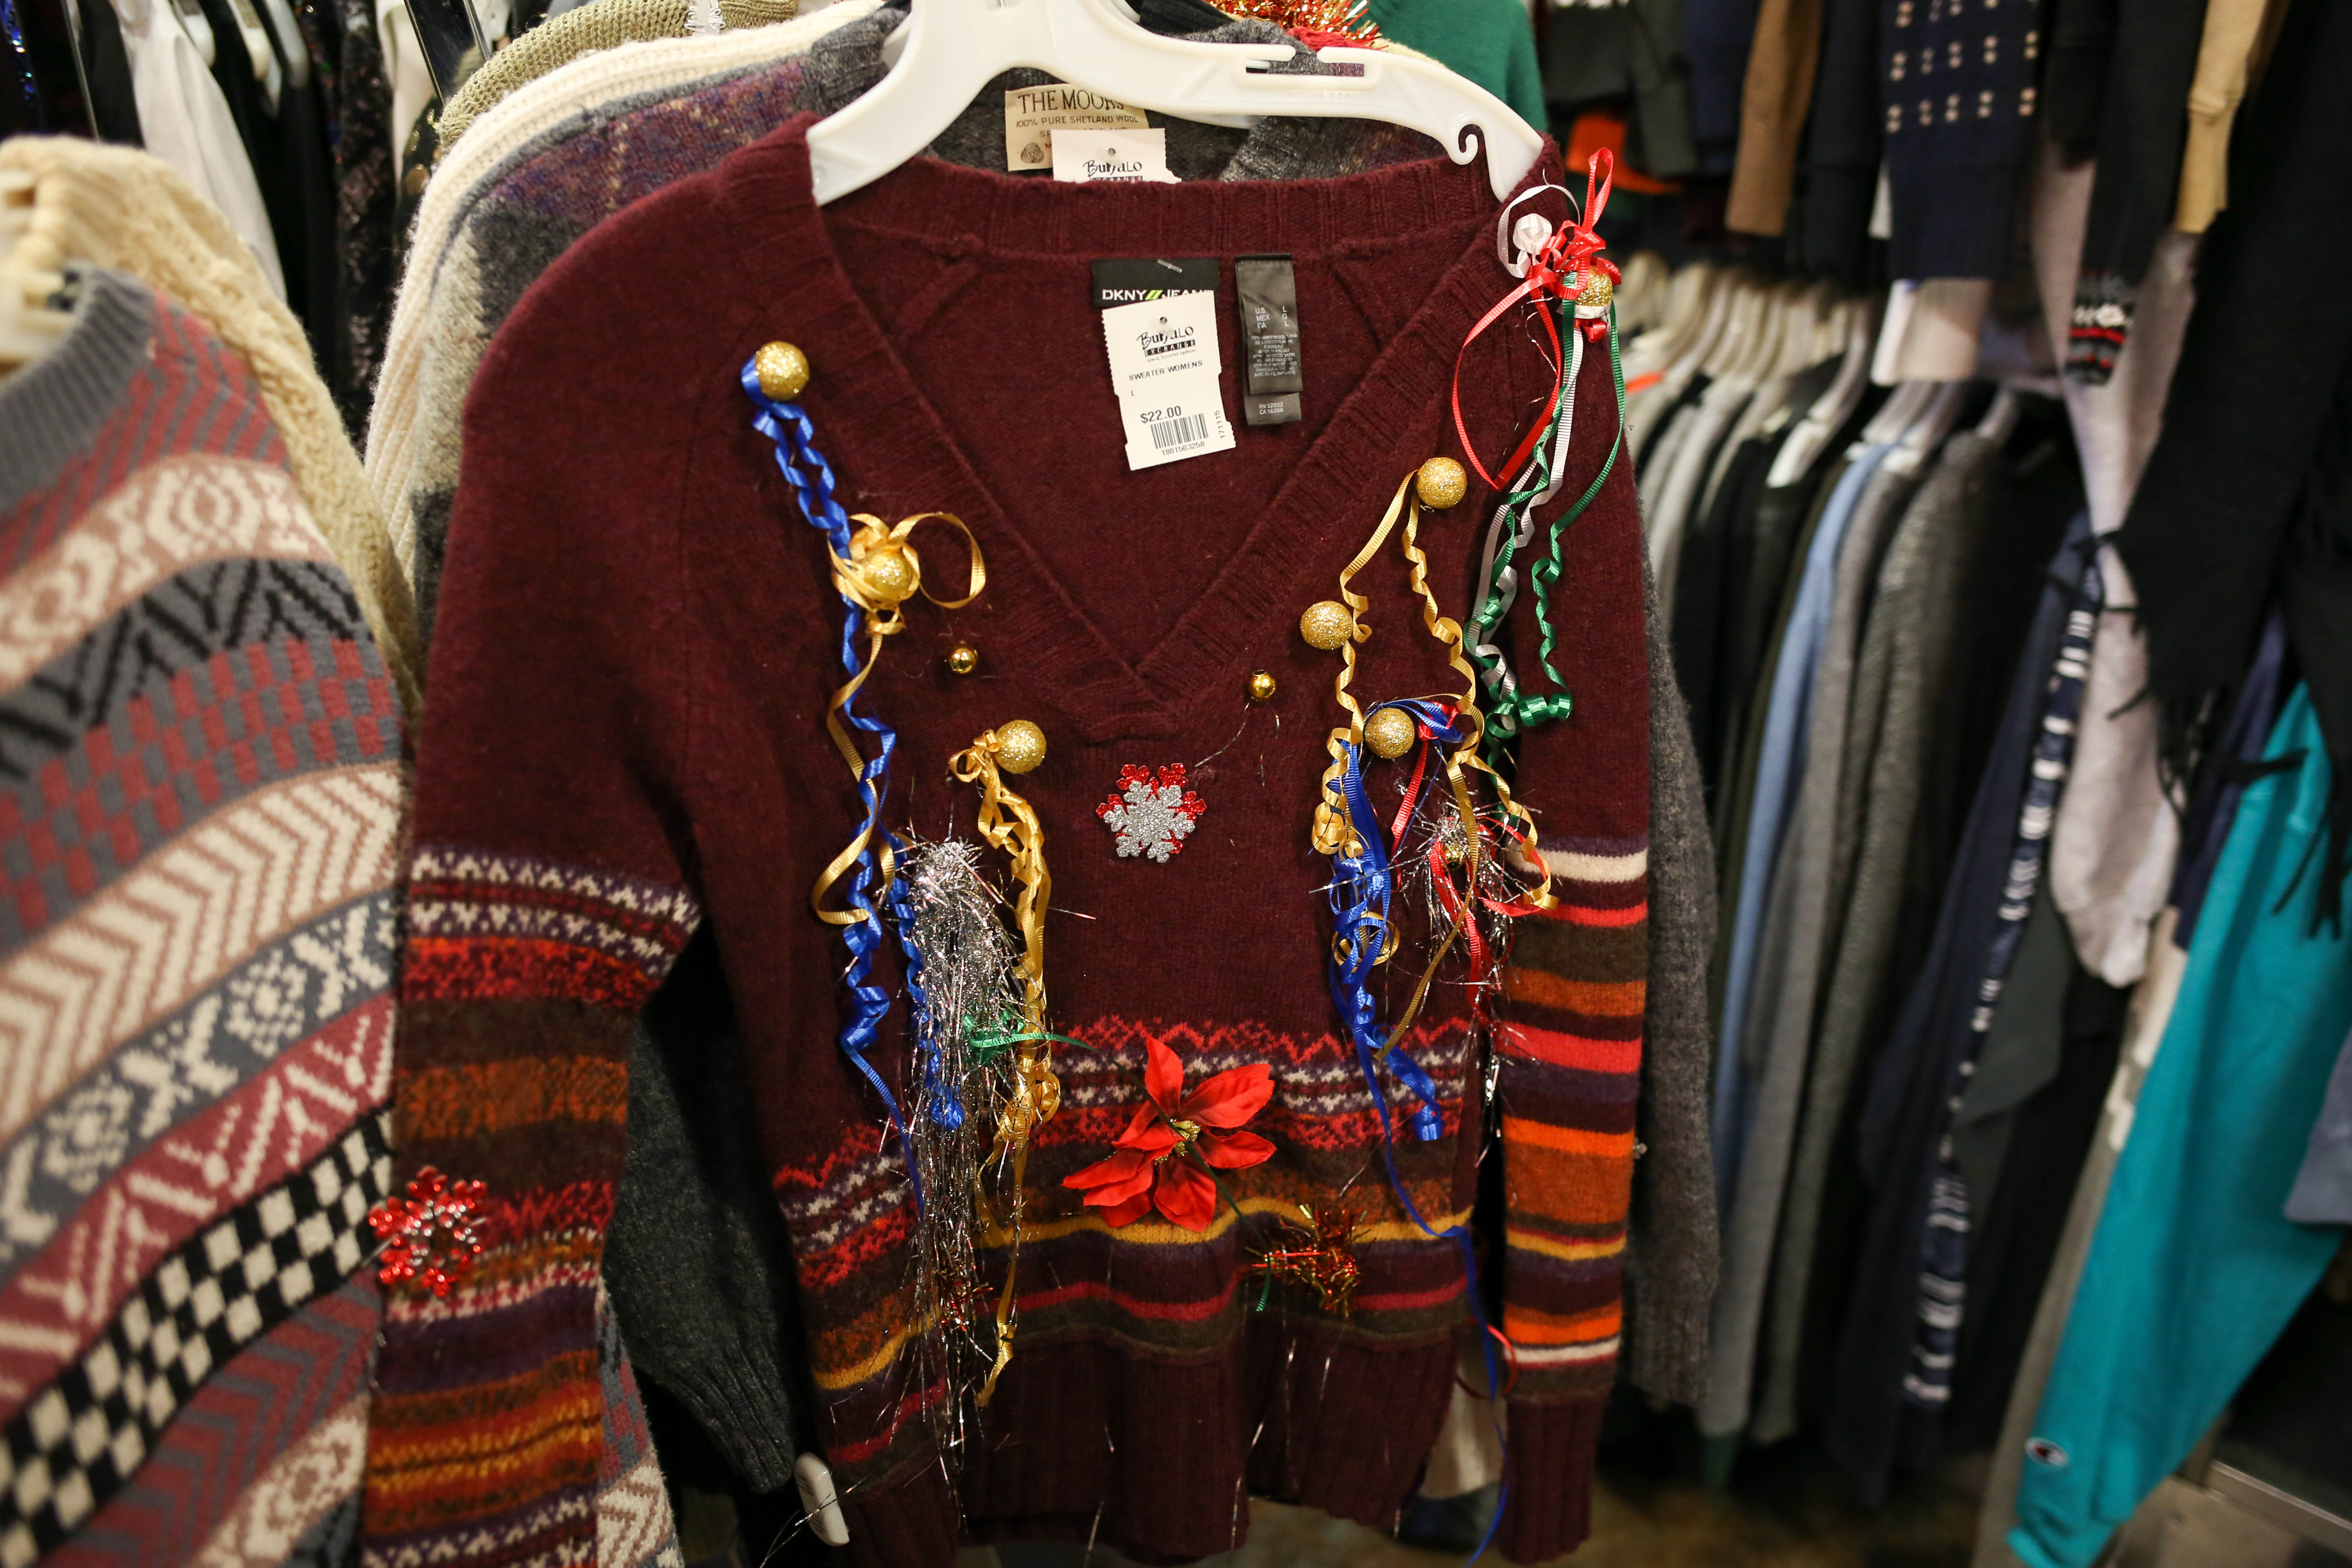 Buffalo Exchange,{&amp;nbsp;}1318 14th St NW{&amp;nbsp;} (Amanda Andrade-Rhoades/DC Refined)<p></p>